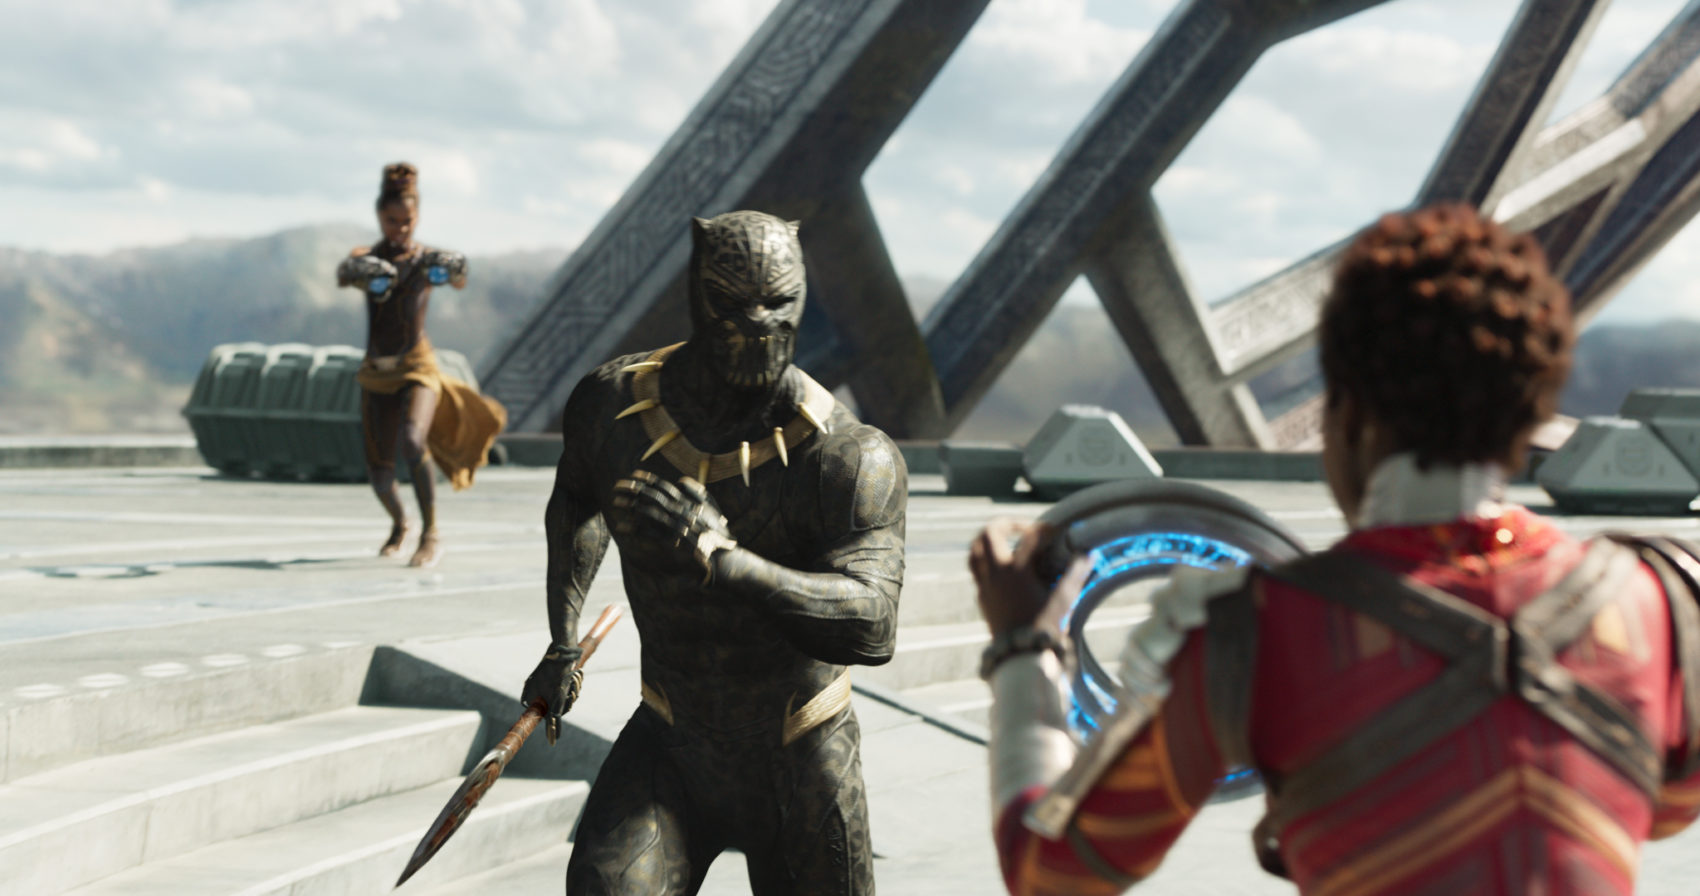 Marvel Studios' BLACK PANTHER..L to R: Shuri (Leititia Wright), Erik Killmonger (Michael B. Jordan) and Nakia (Lupita Nyong'o)..Ph: Film Frame..©Marvel Studios 2018